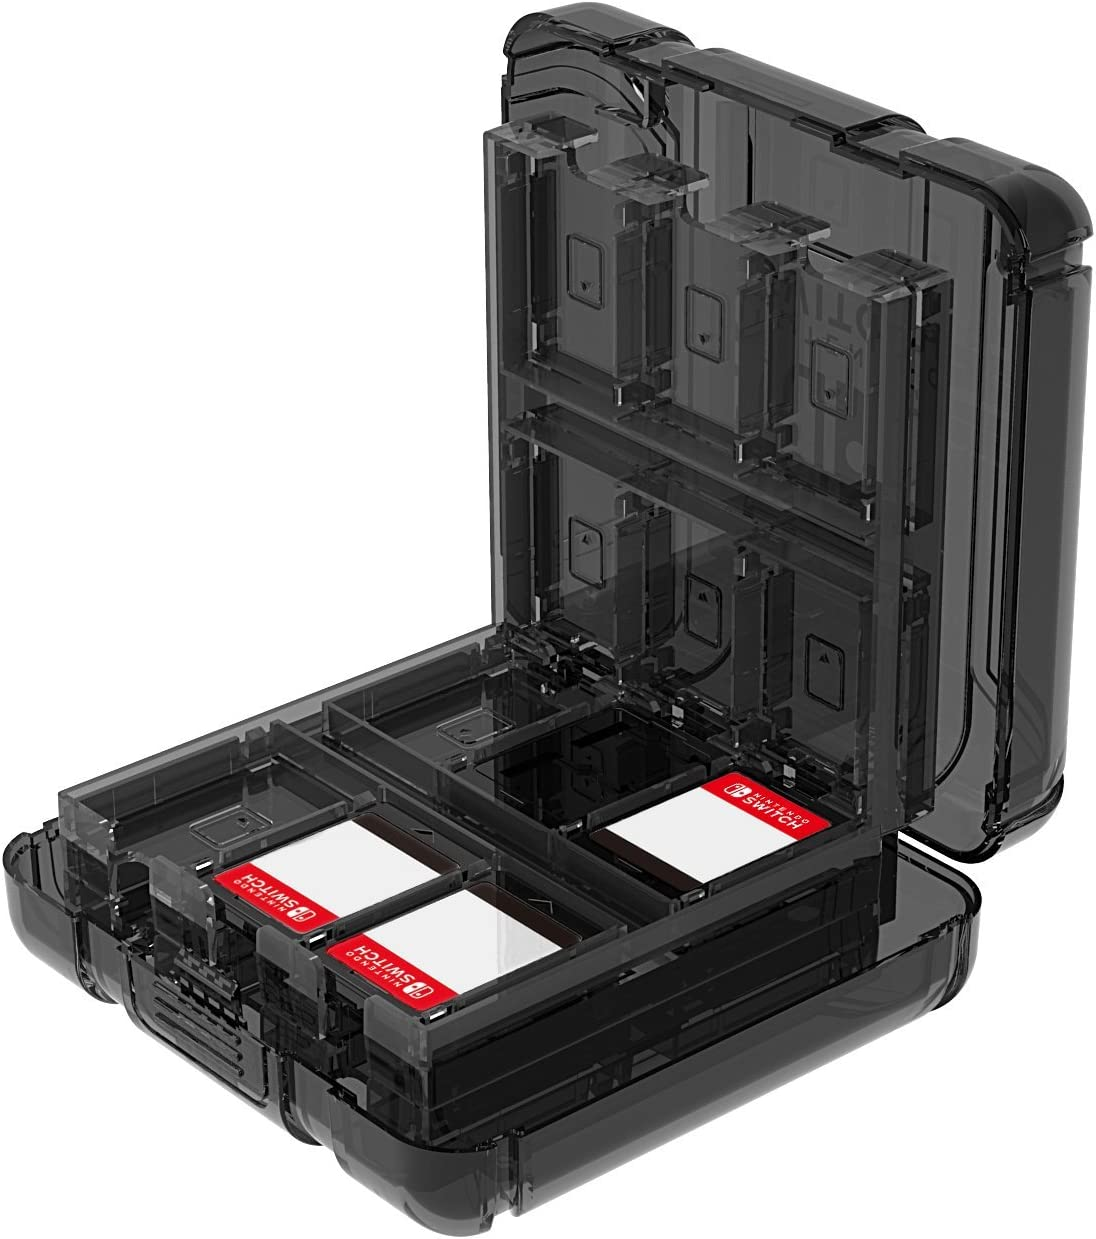 Amazon.com: Nintendo Switch Deluxe Game Case For Up to 24 ...